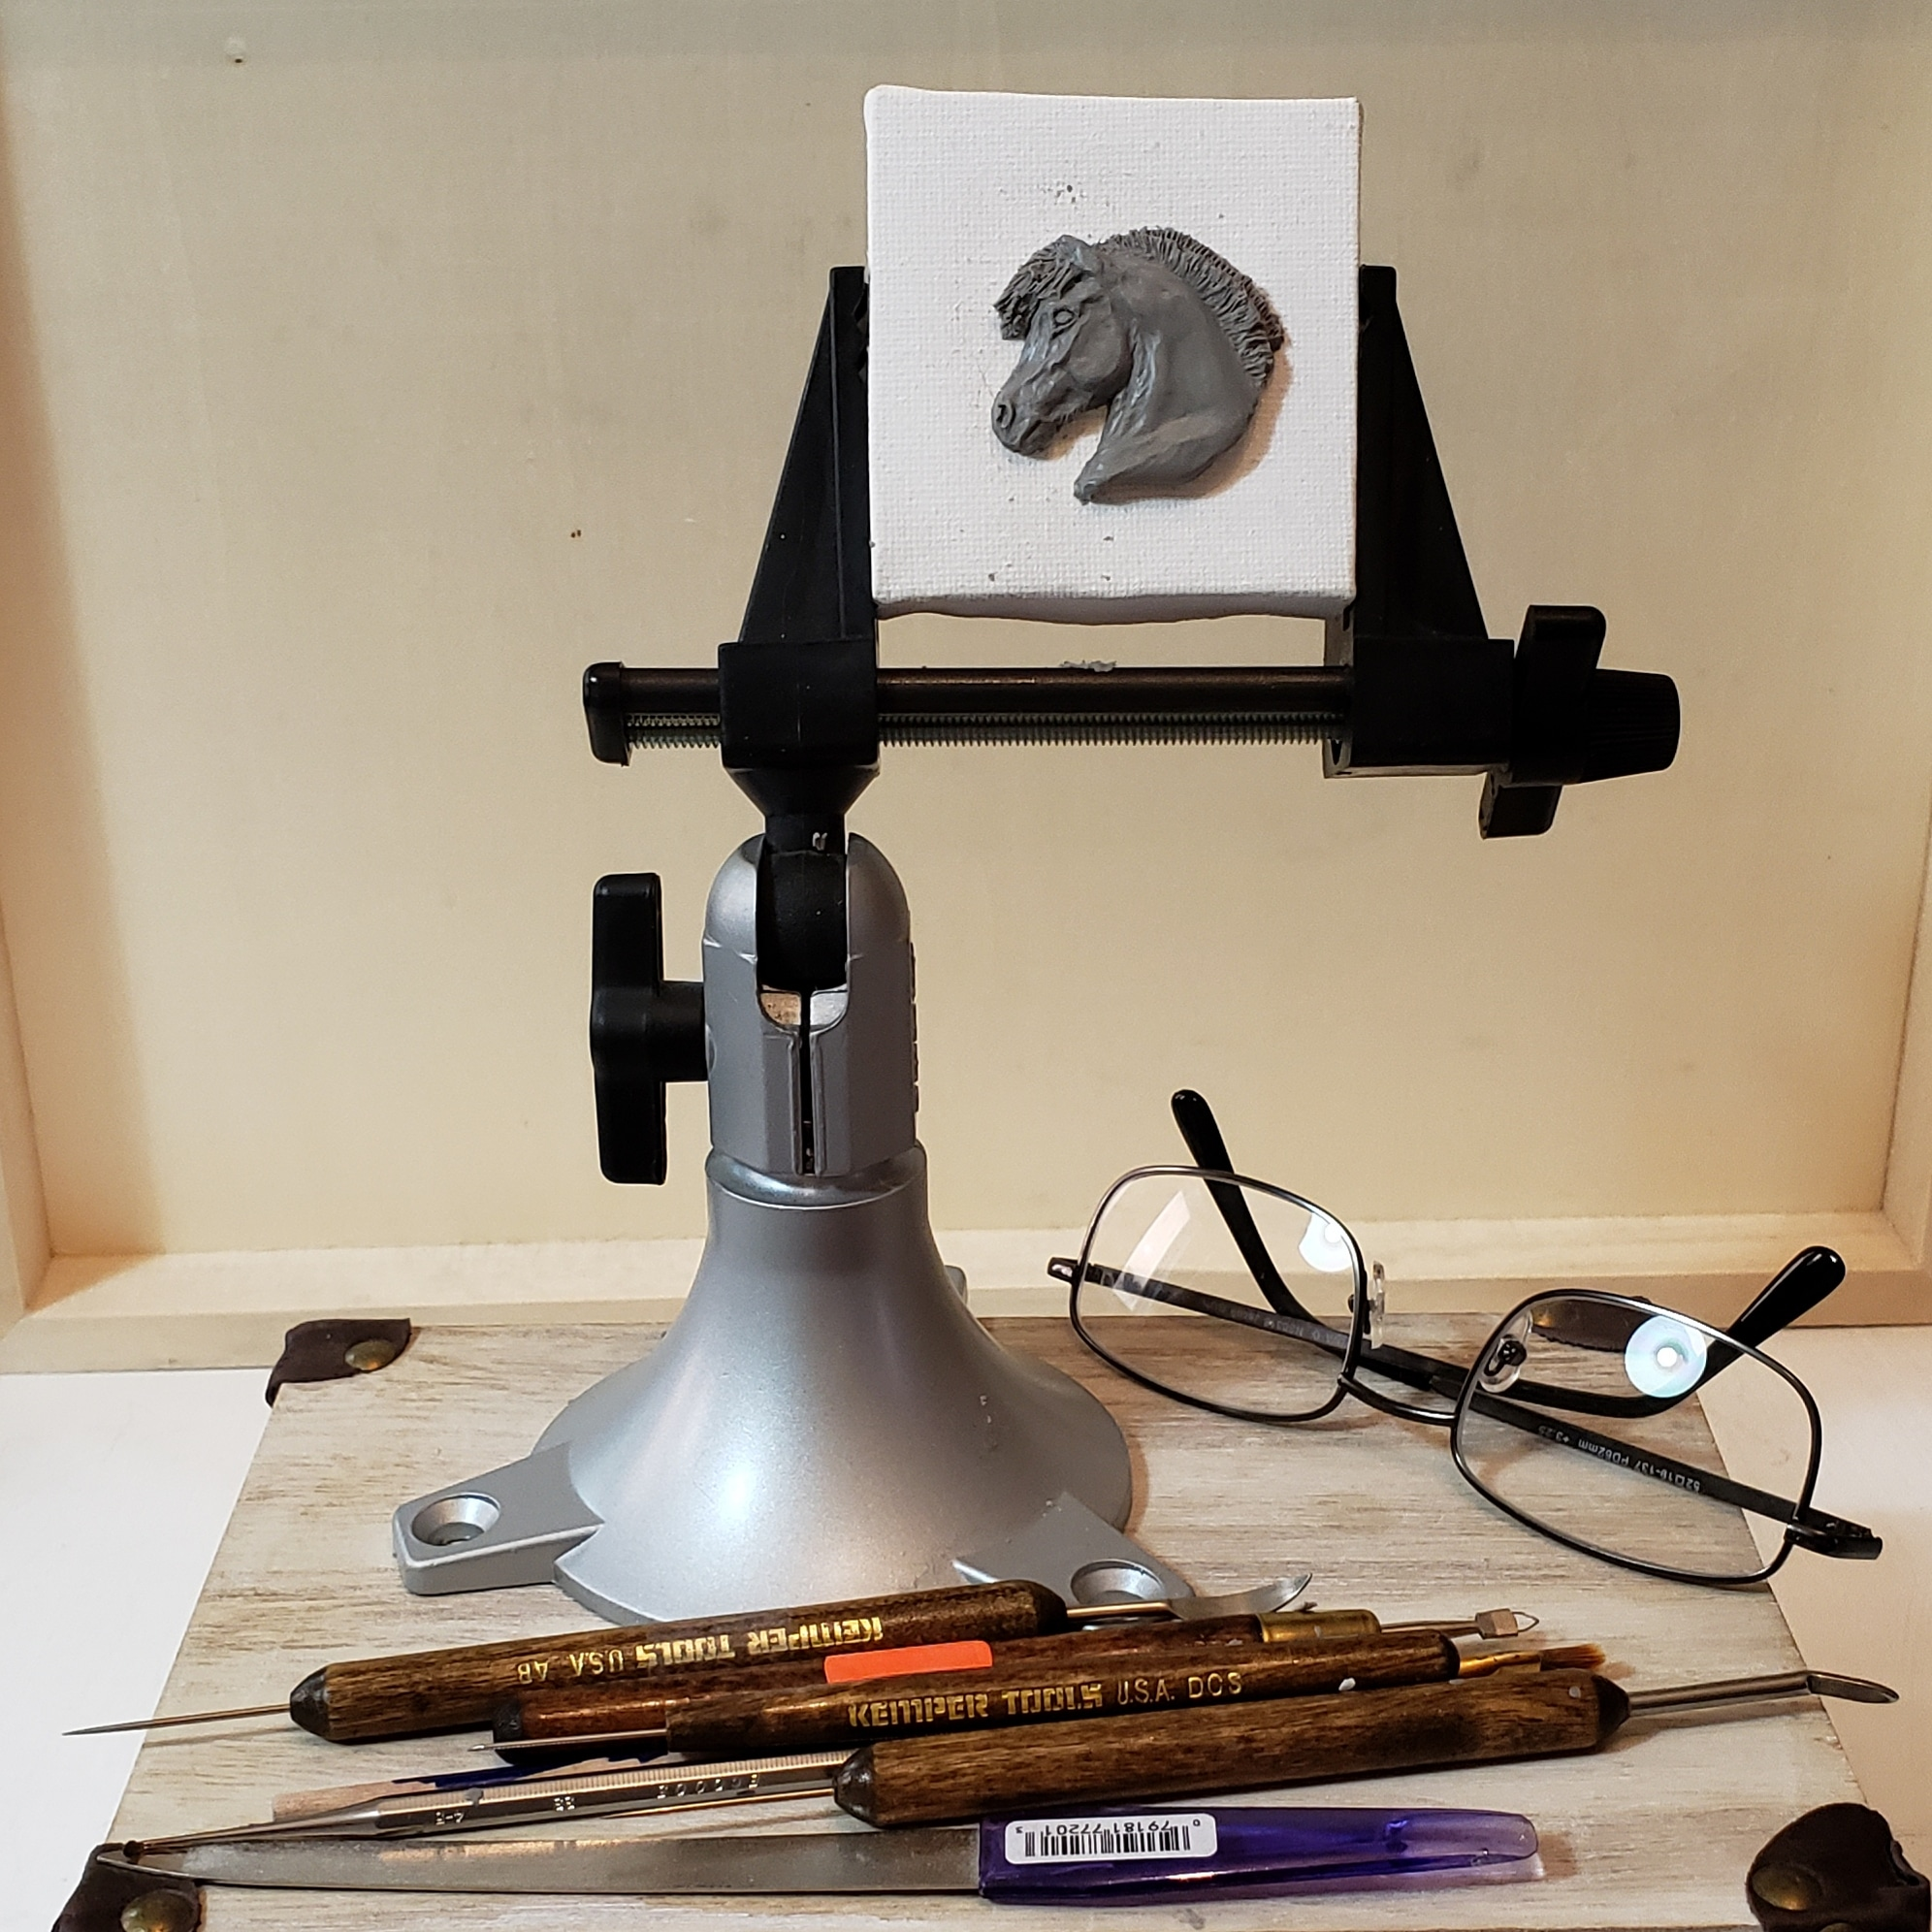 My teeny tiny easel set up for sculpting on a tiny scale.